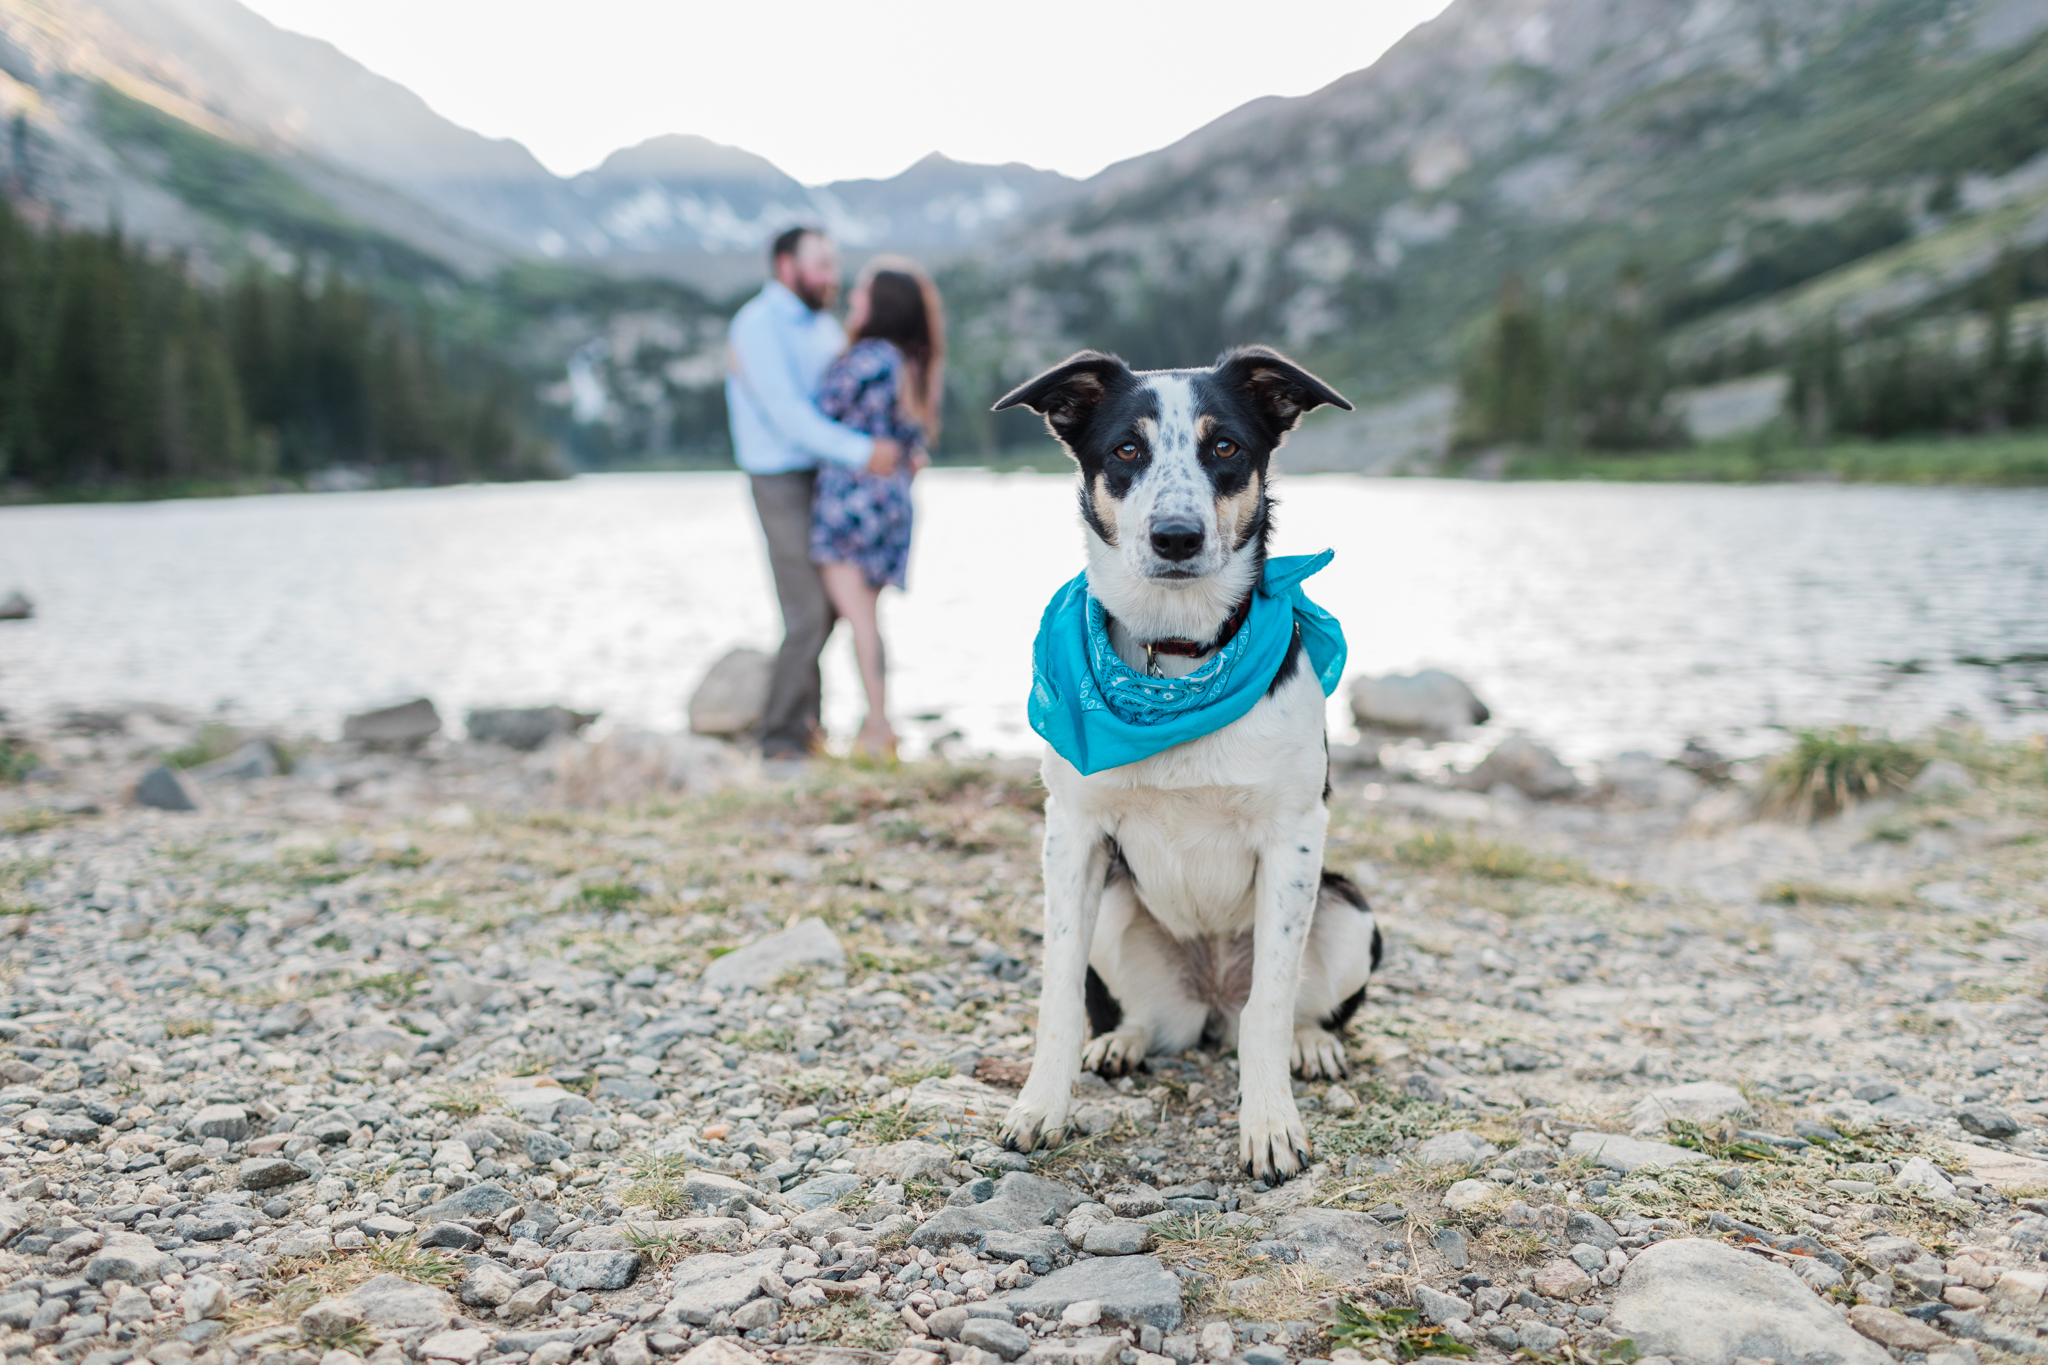 Ally_Joe_Breckenridge_Engagement_Session_19